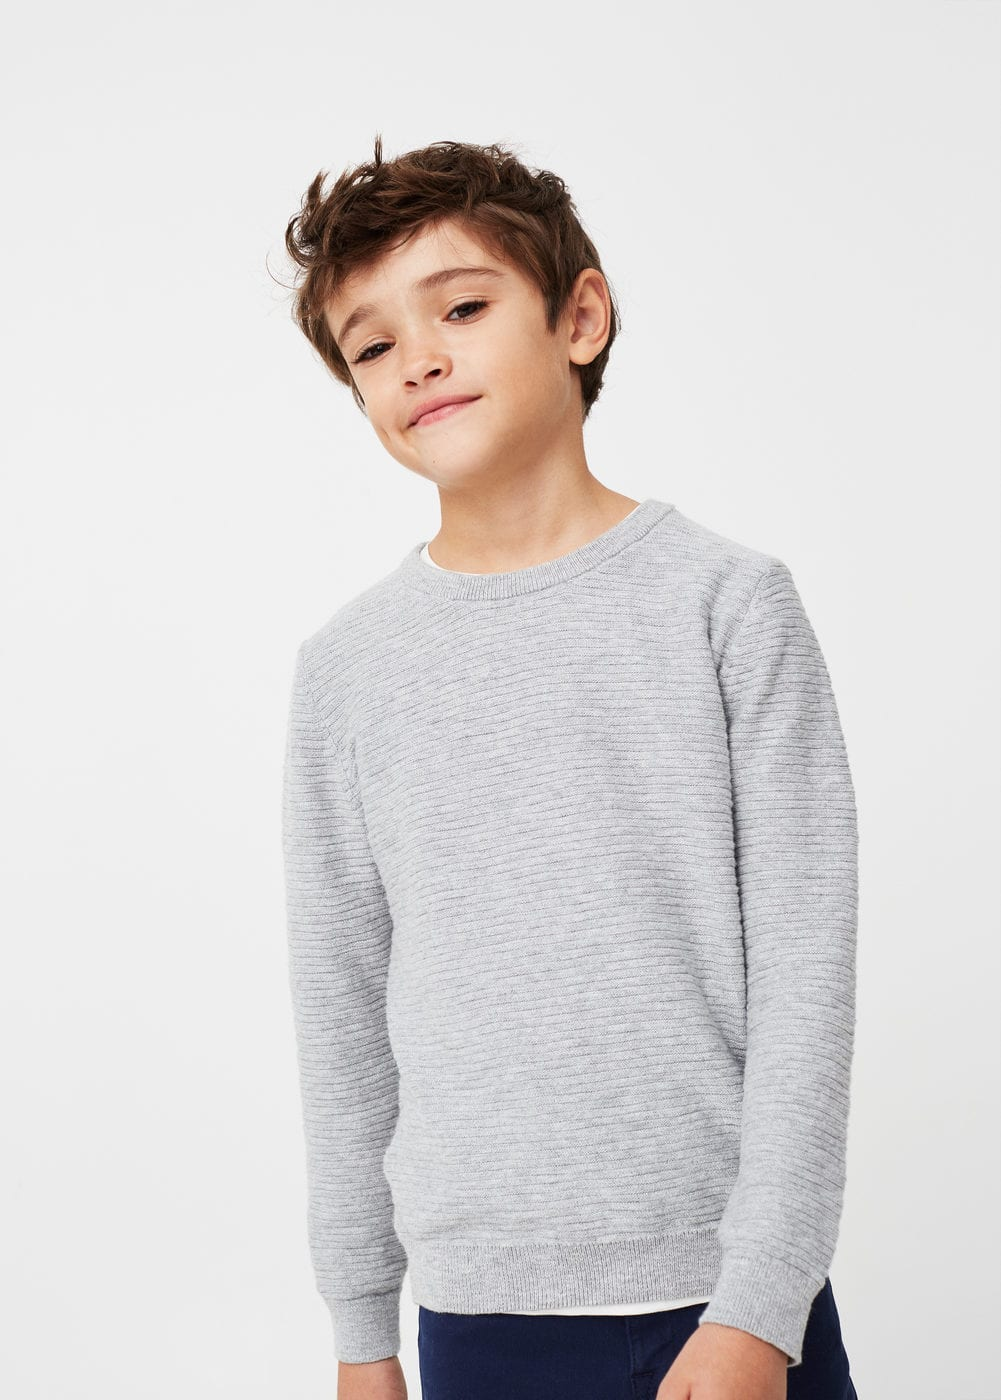 Textured cotton-blend sweater | MANGO KIDS